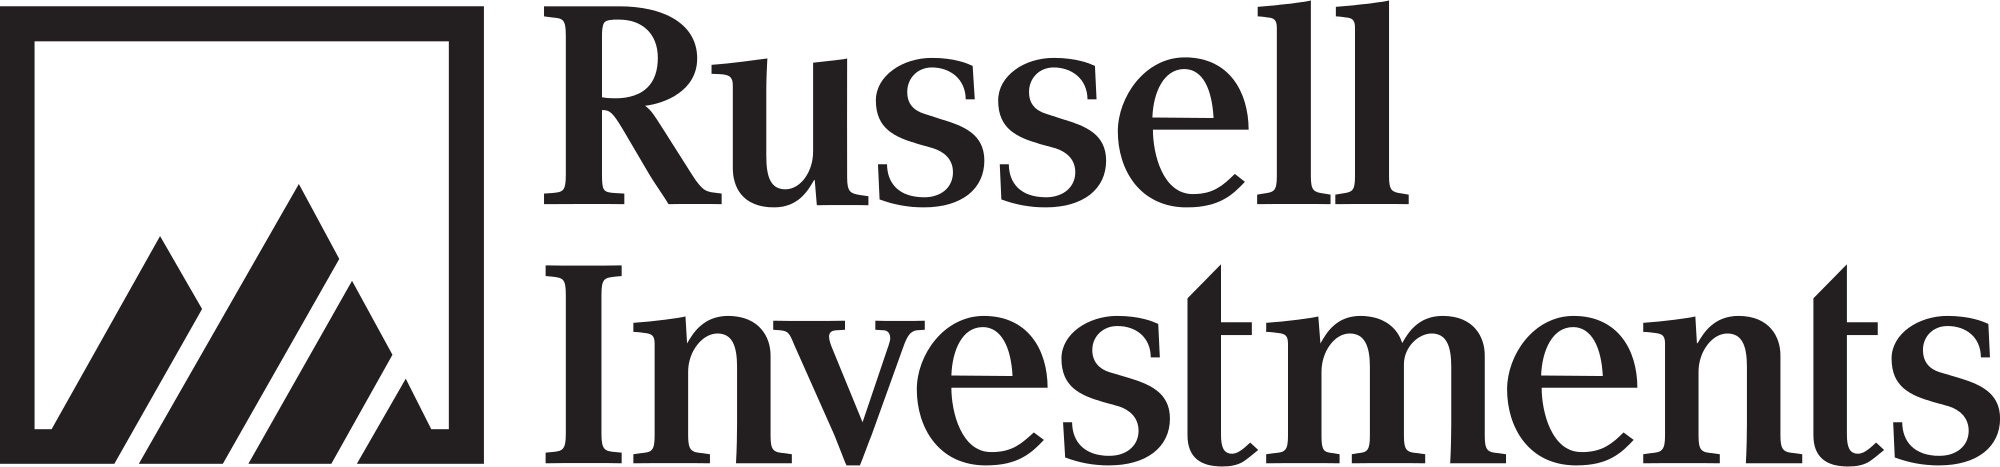 Russell Investments Transparent.png